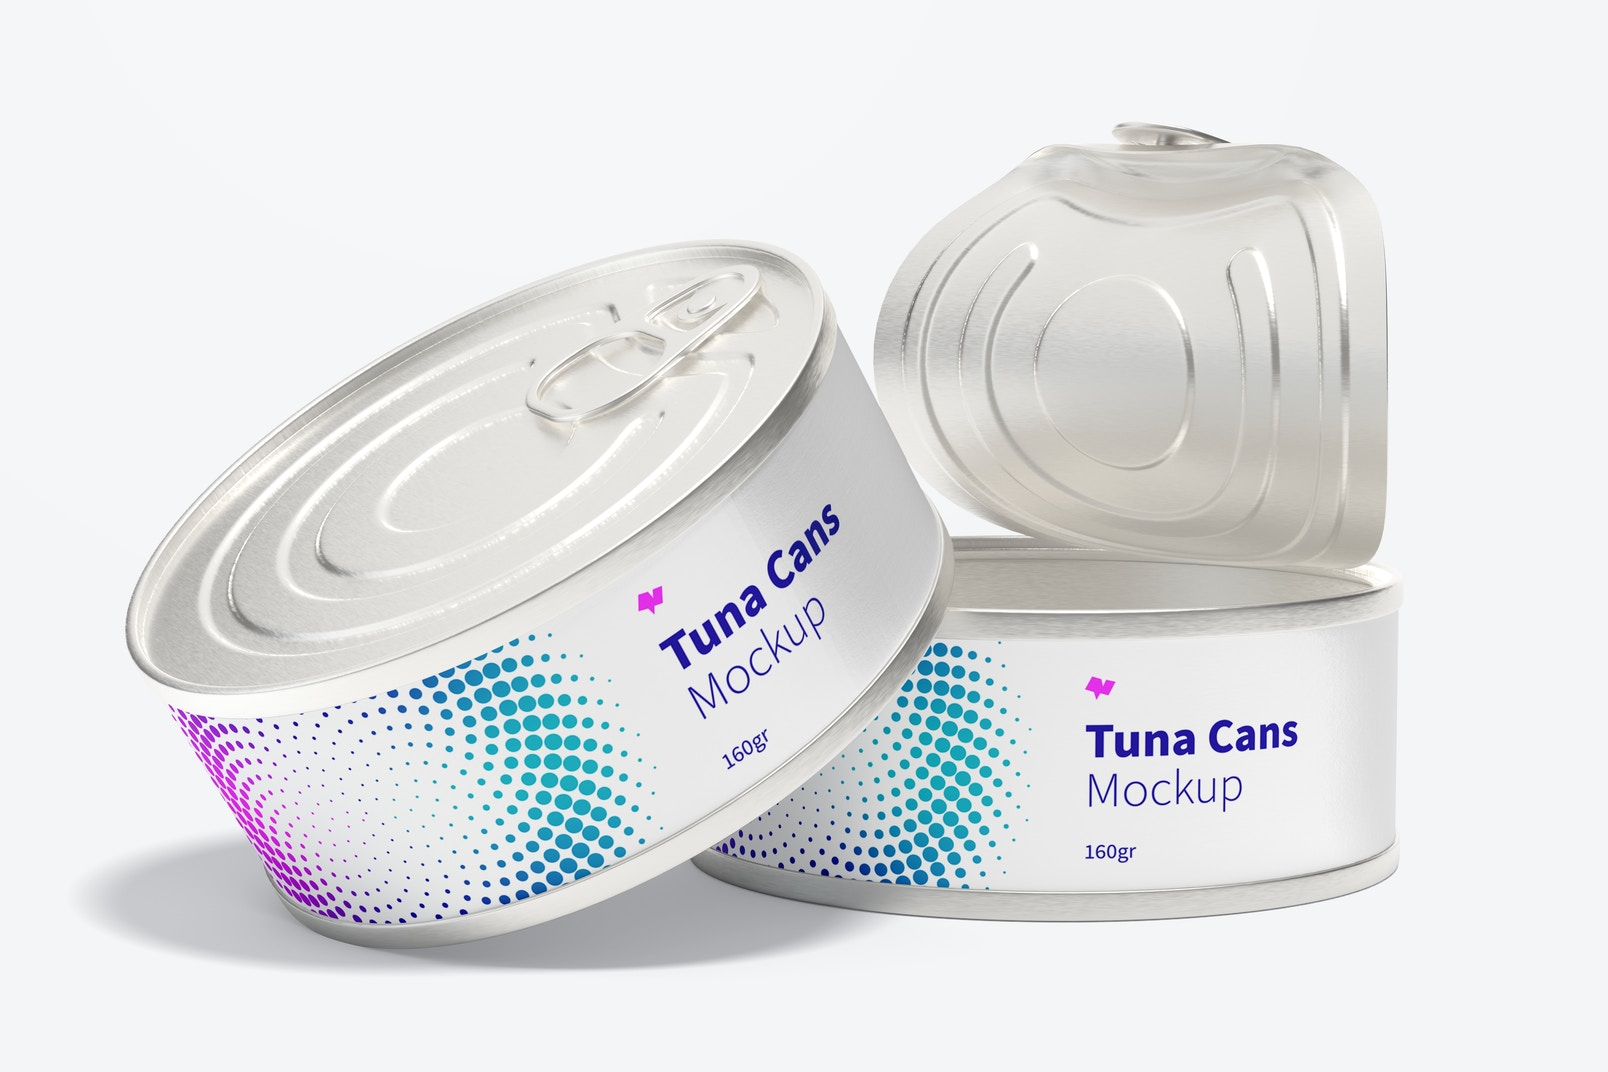 160gr Tuna Cans Mockup, Open and Close